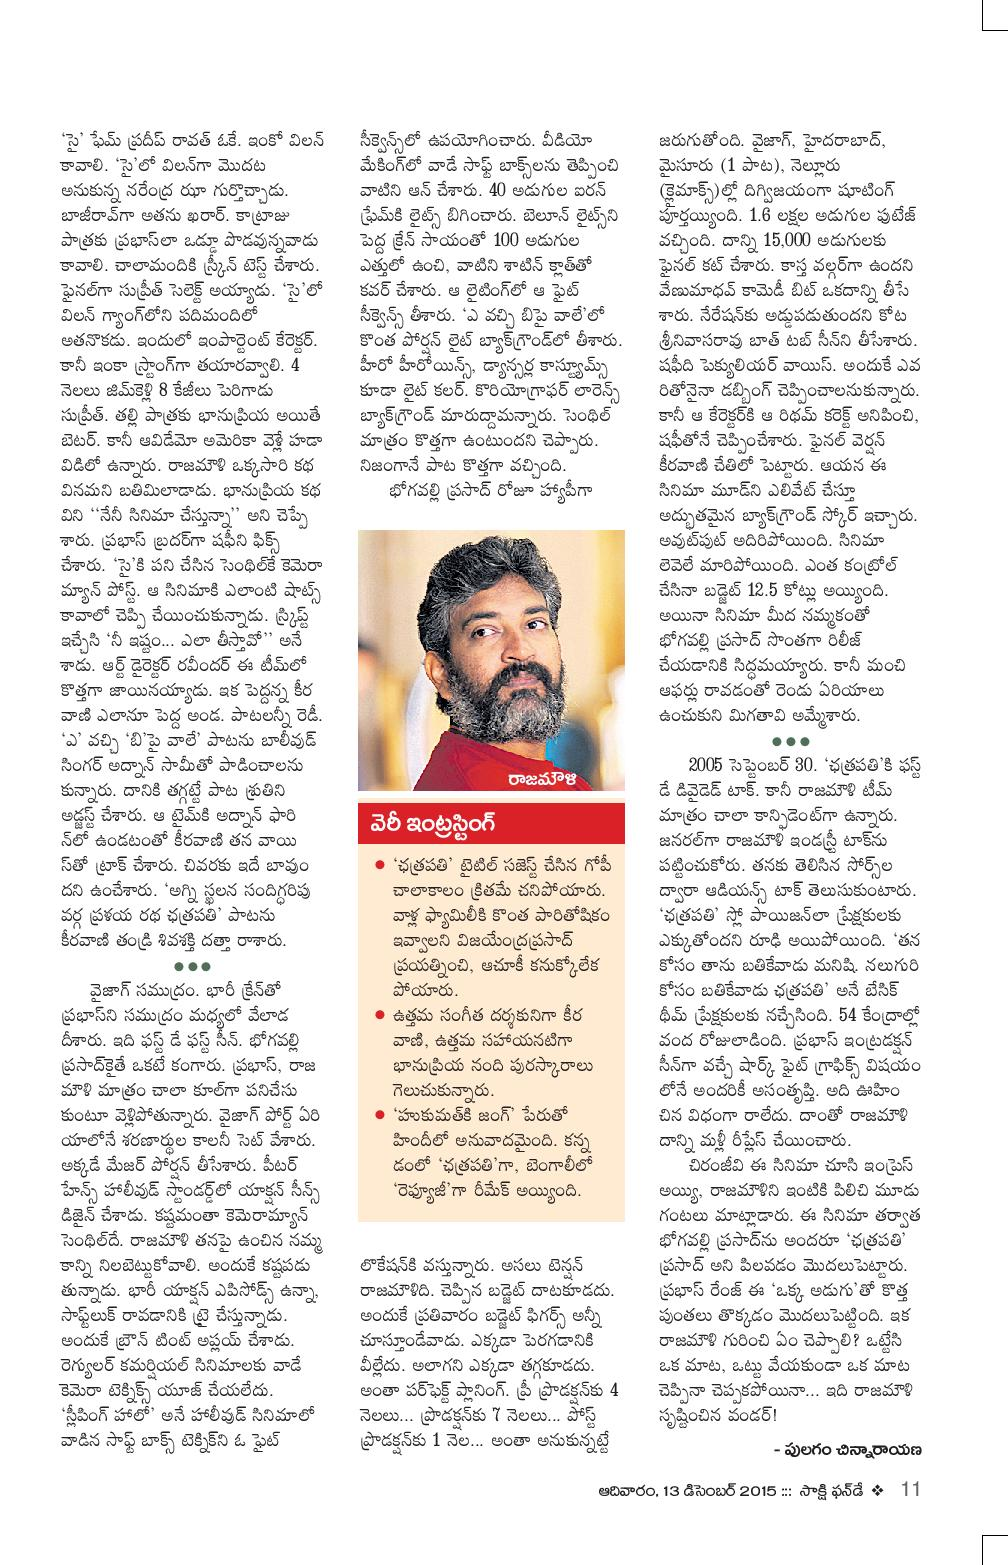 Chatrapathi_Cinema Venuka Katha_Funday (13-12-2015)-page-002